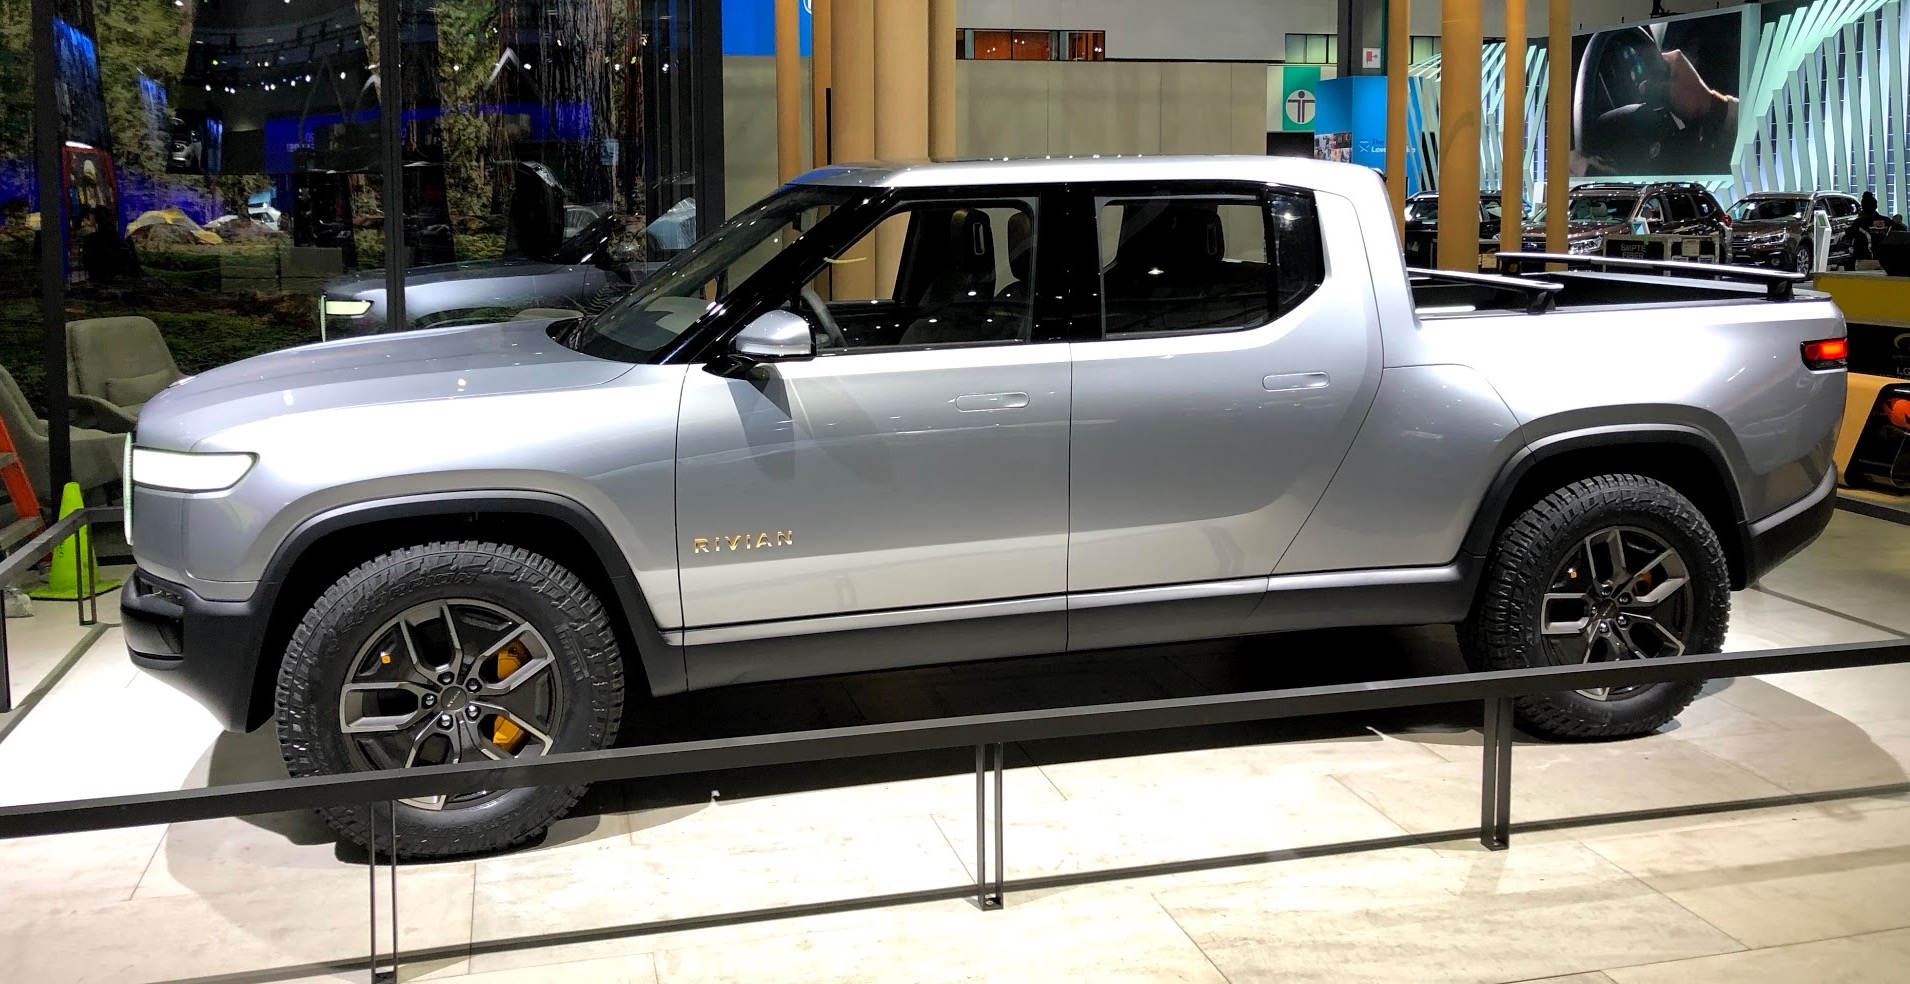 Ford invests $500 million in electric pickup startup Rivian, will make an EV together